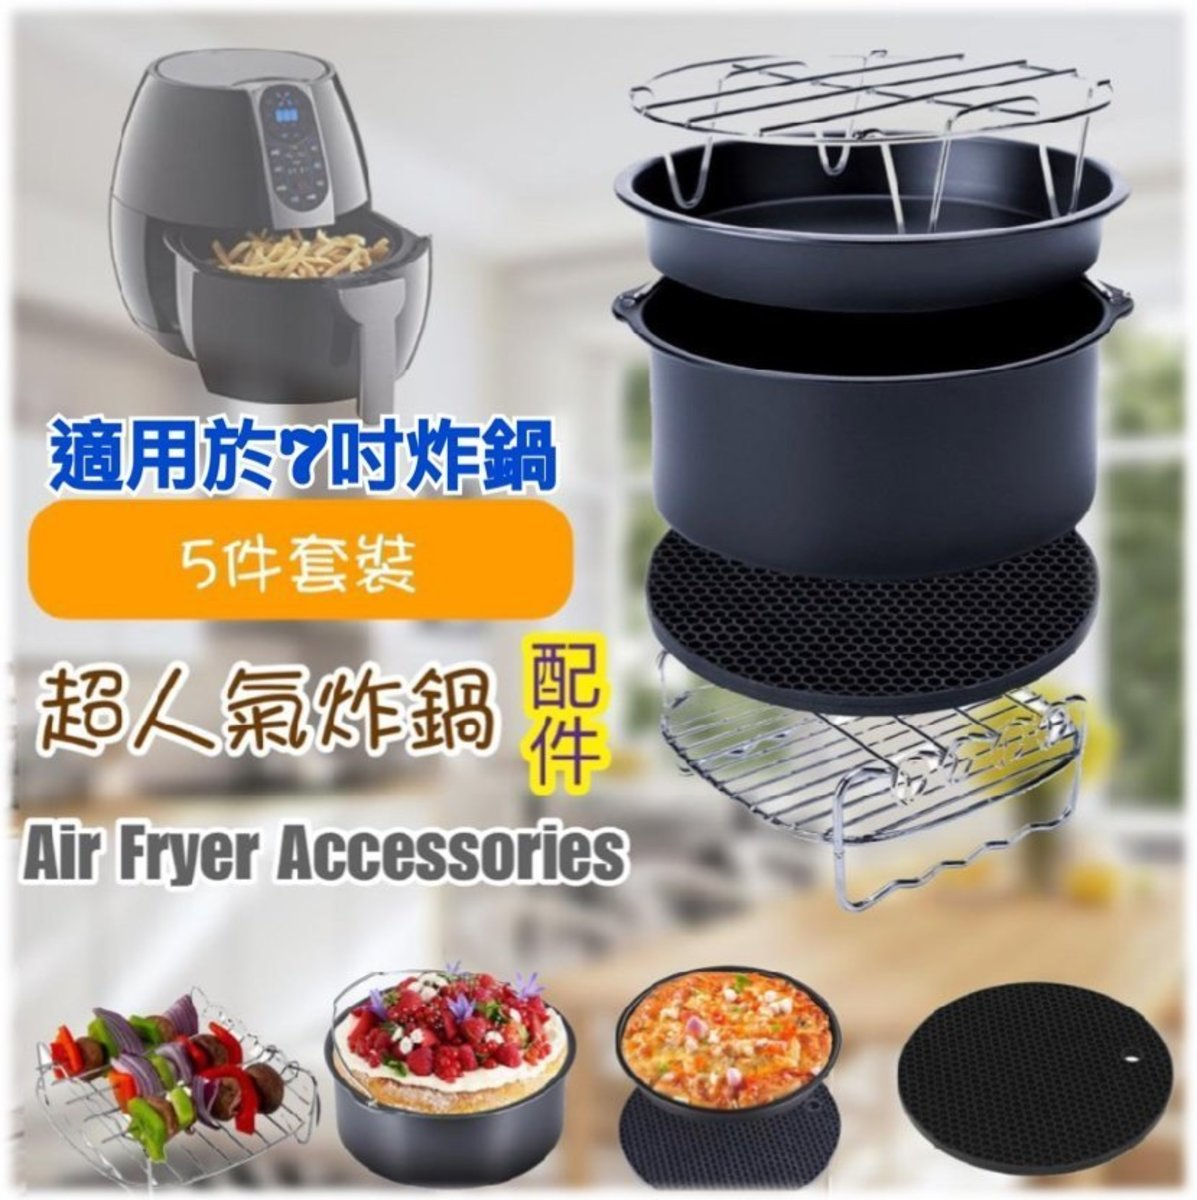 5 pcs/set (7 inches) Air fryer accessories package